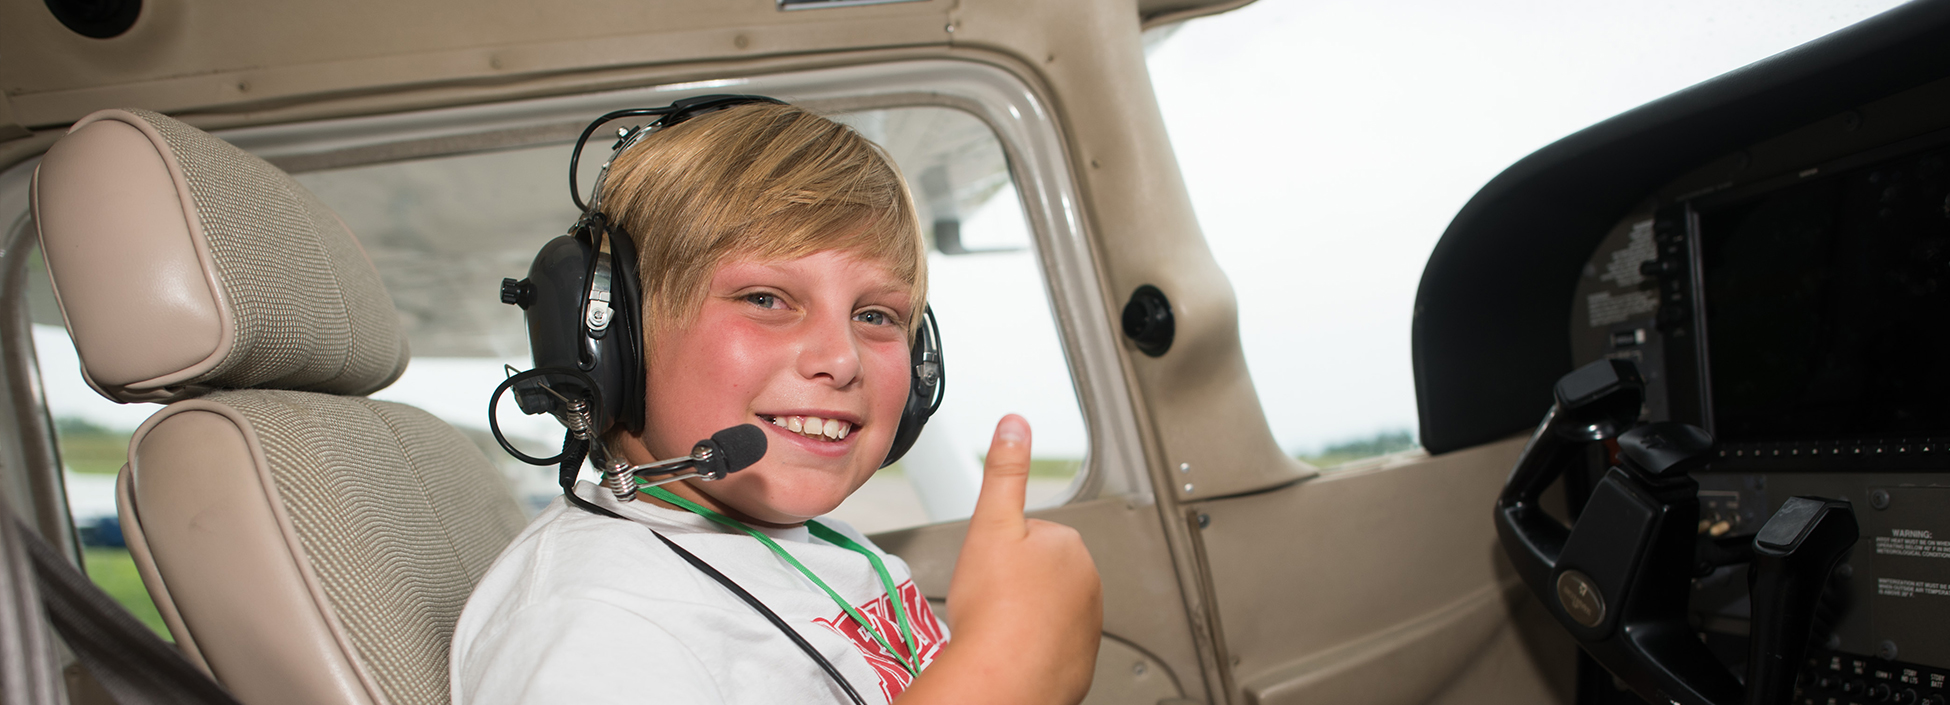 AeroCamp student looks excited to be in the cockpit! Professional Pilot technology, youth, camp, STEM